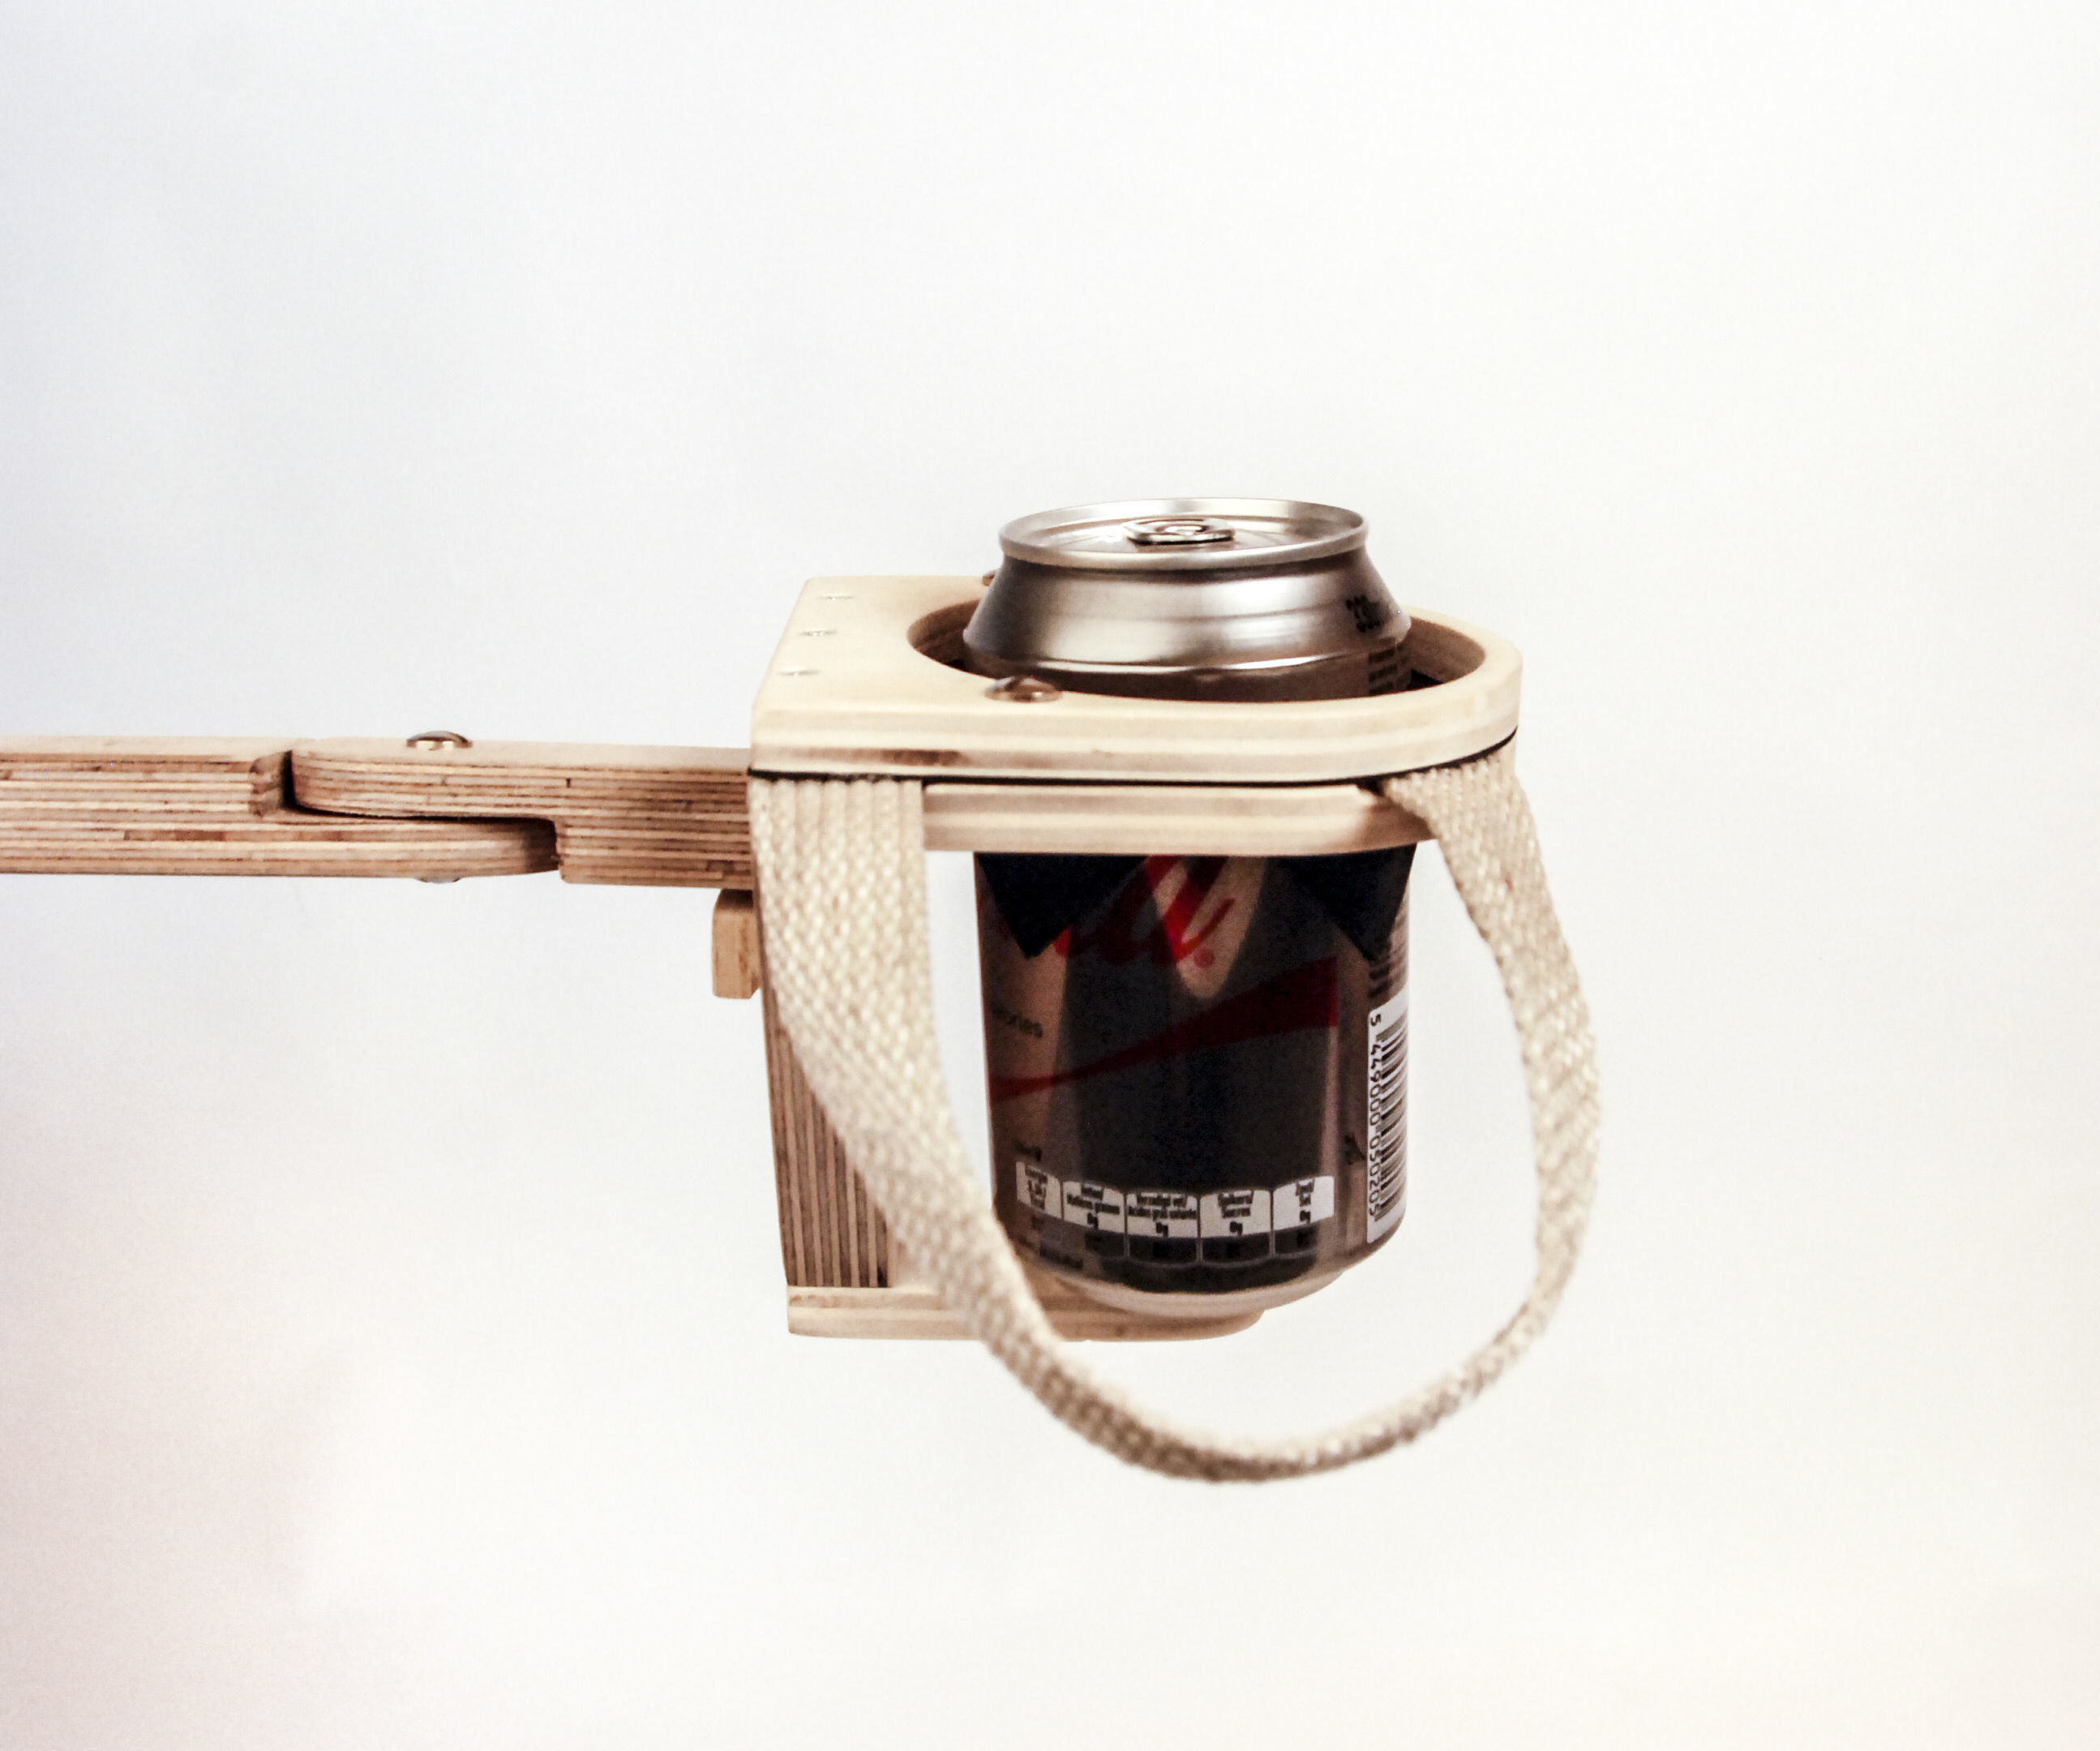 Adaptable drinking aid for people with disability